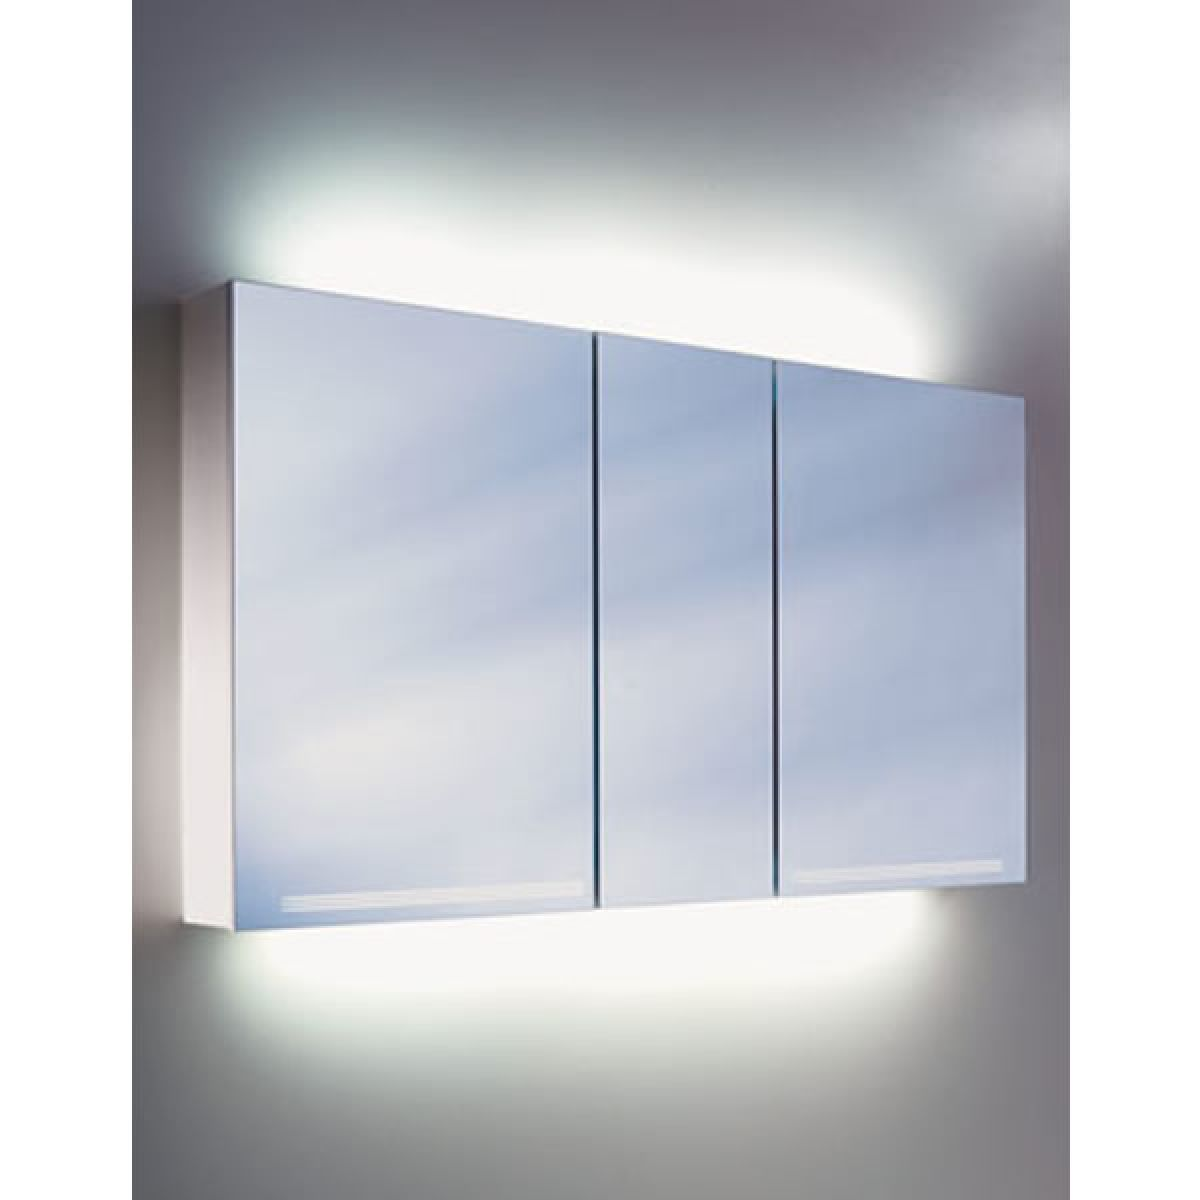 3 Door Mirrored Bathroom Cabinet Schneider Graceline 3 Door Mirror Cabinet Uk Bathrooms